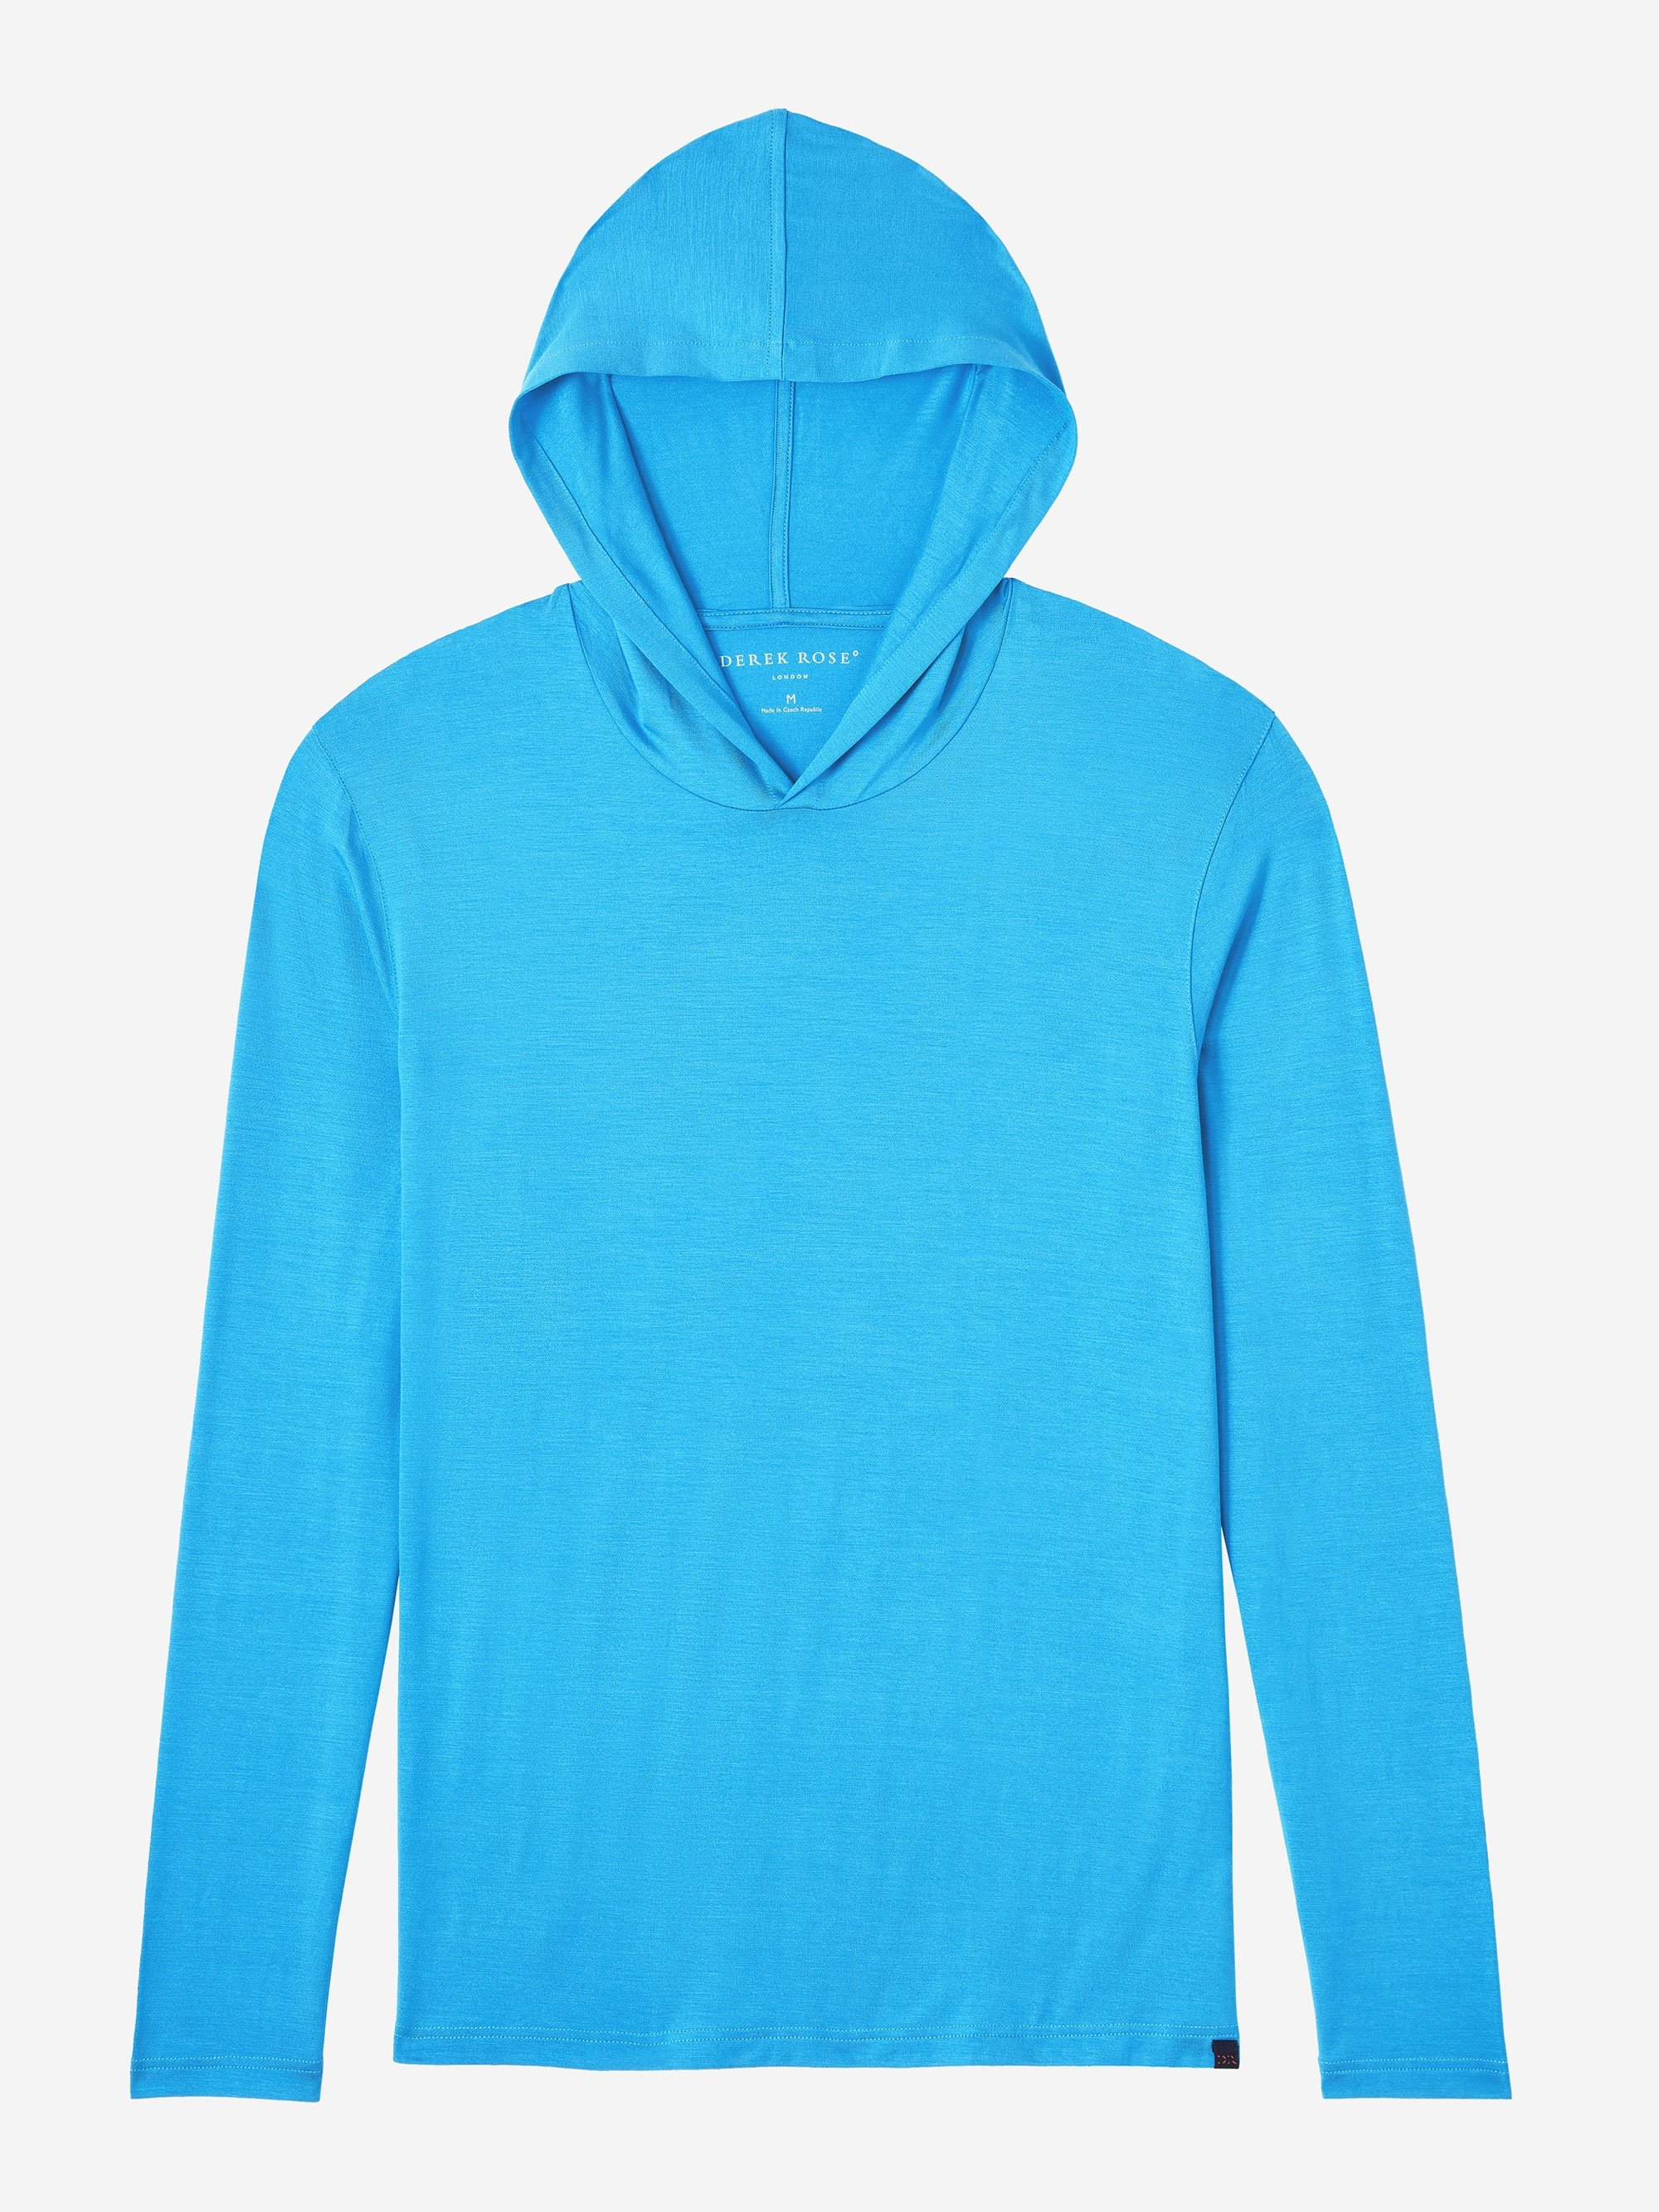 Men's Jersey Pullover Hoodie Basel 6 Micro Modal Stretch Blue